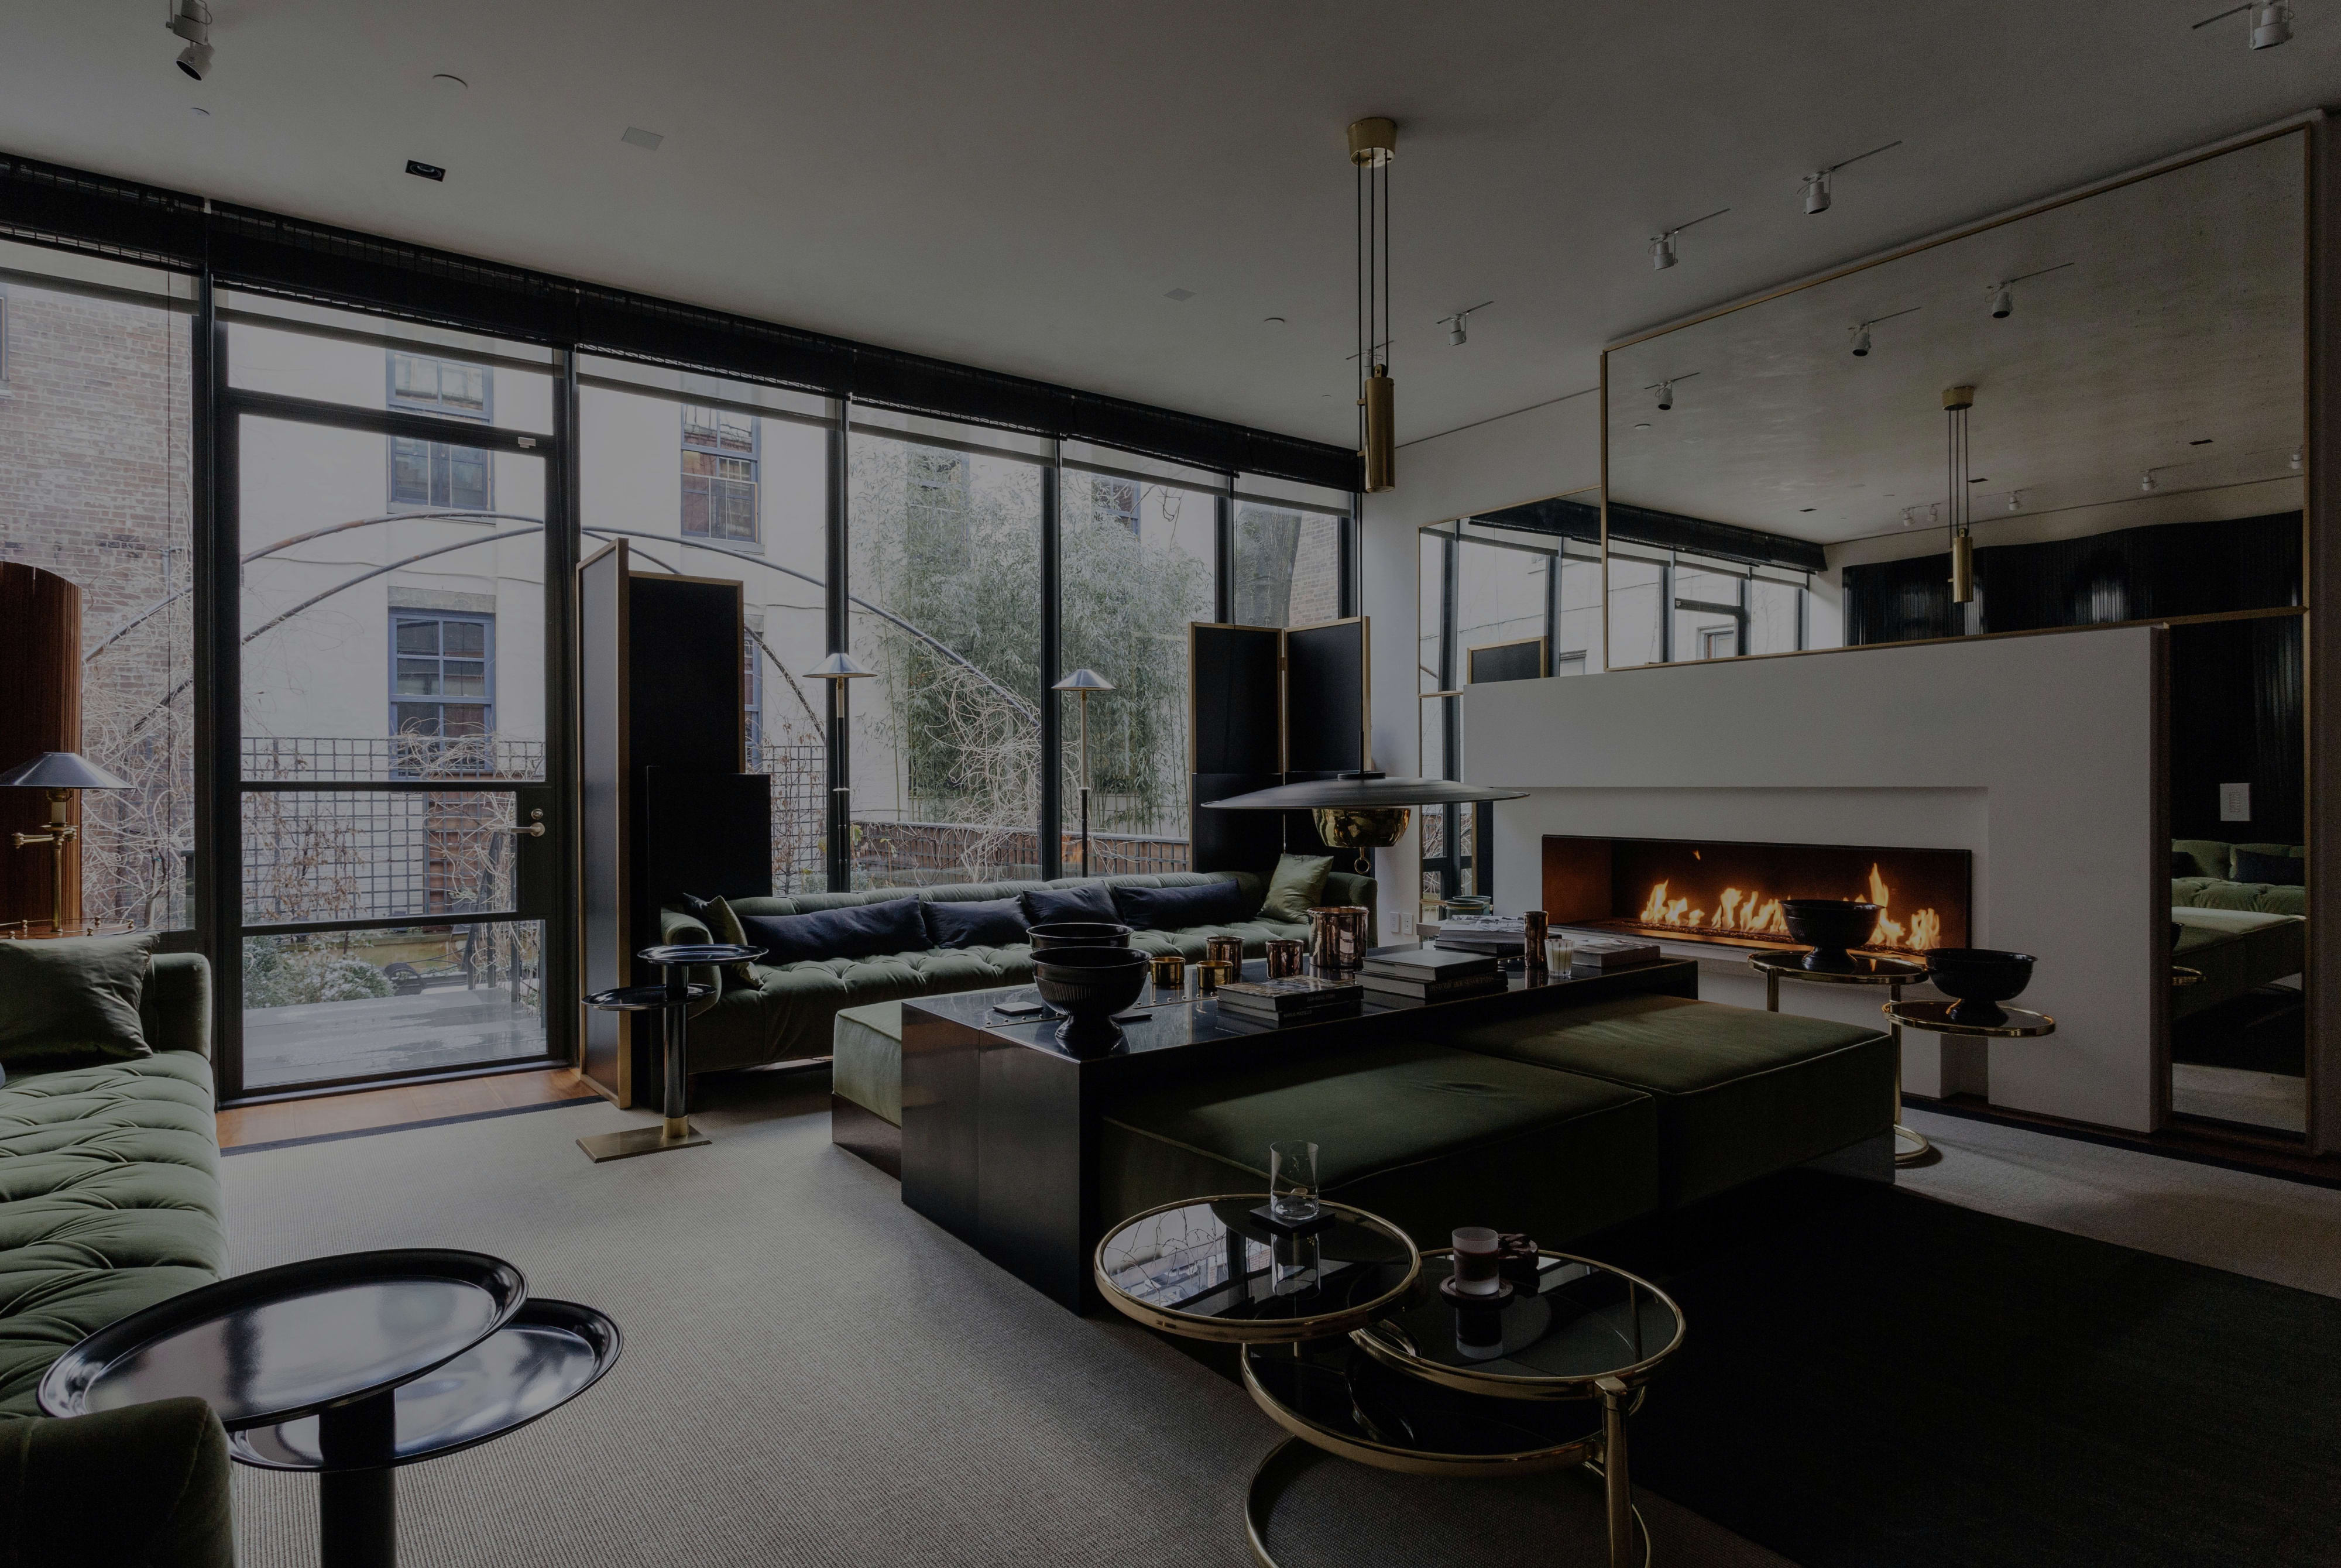 Rent A Space With A Fireplace In New York, NY